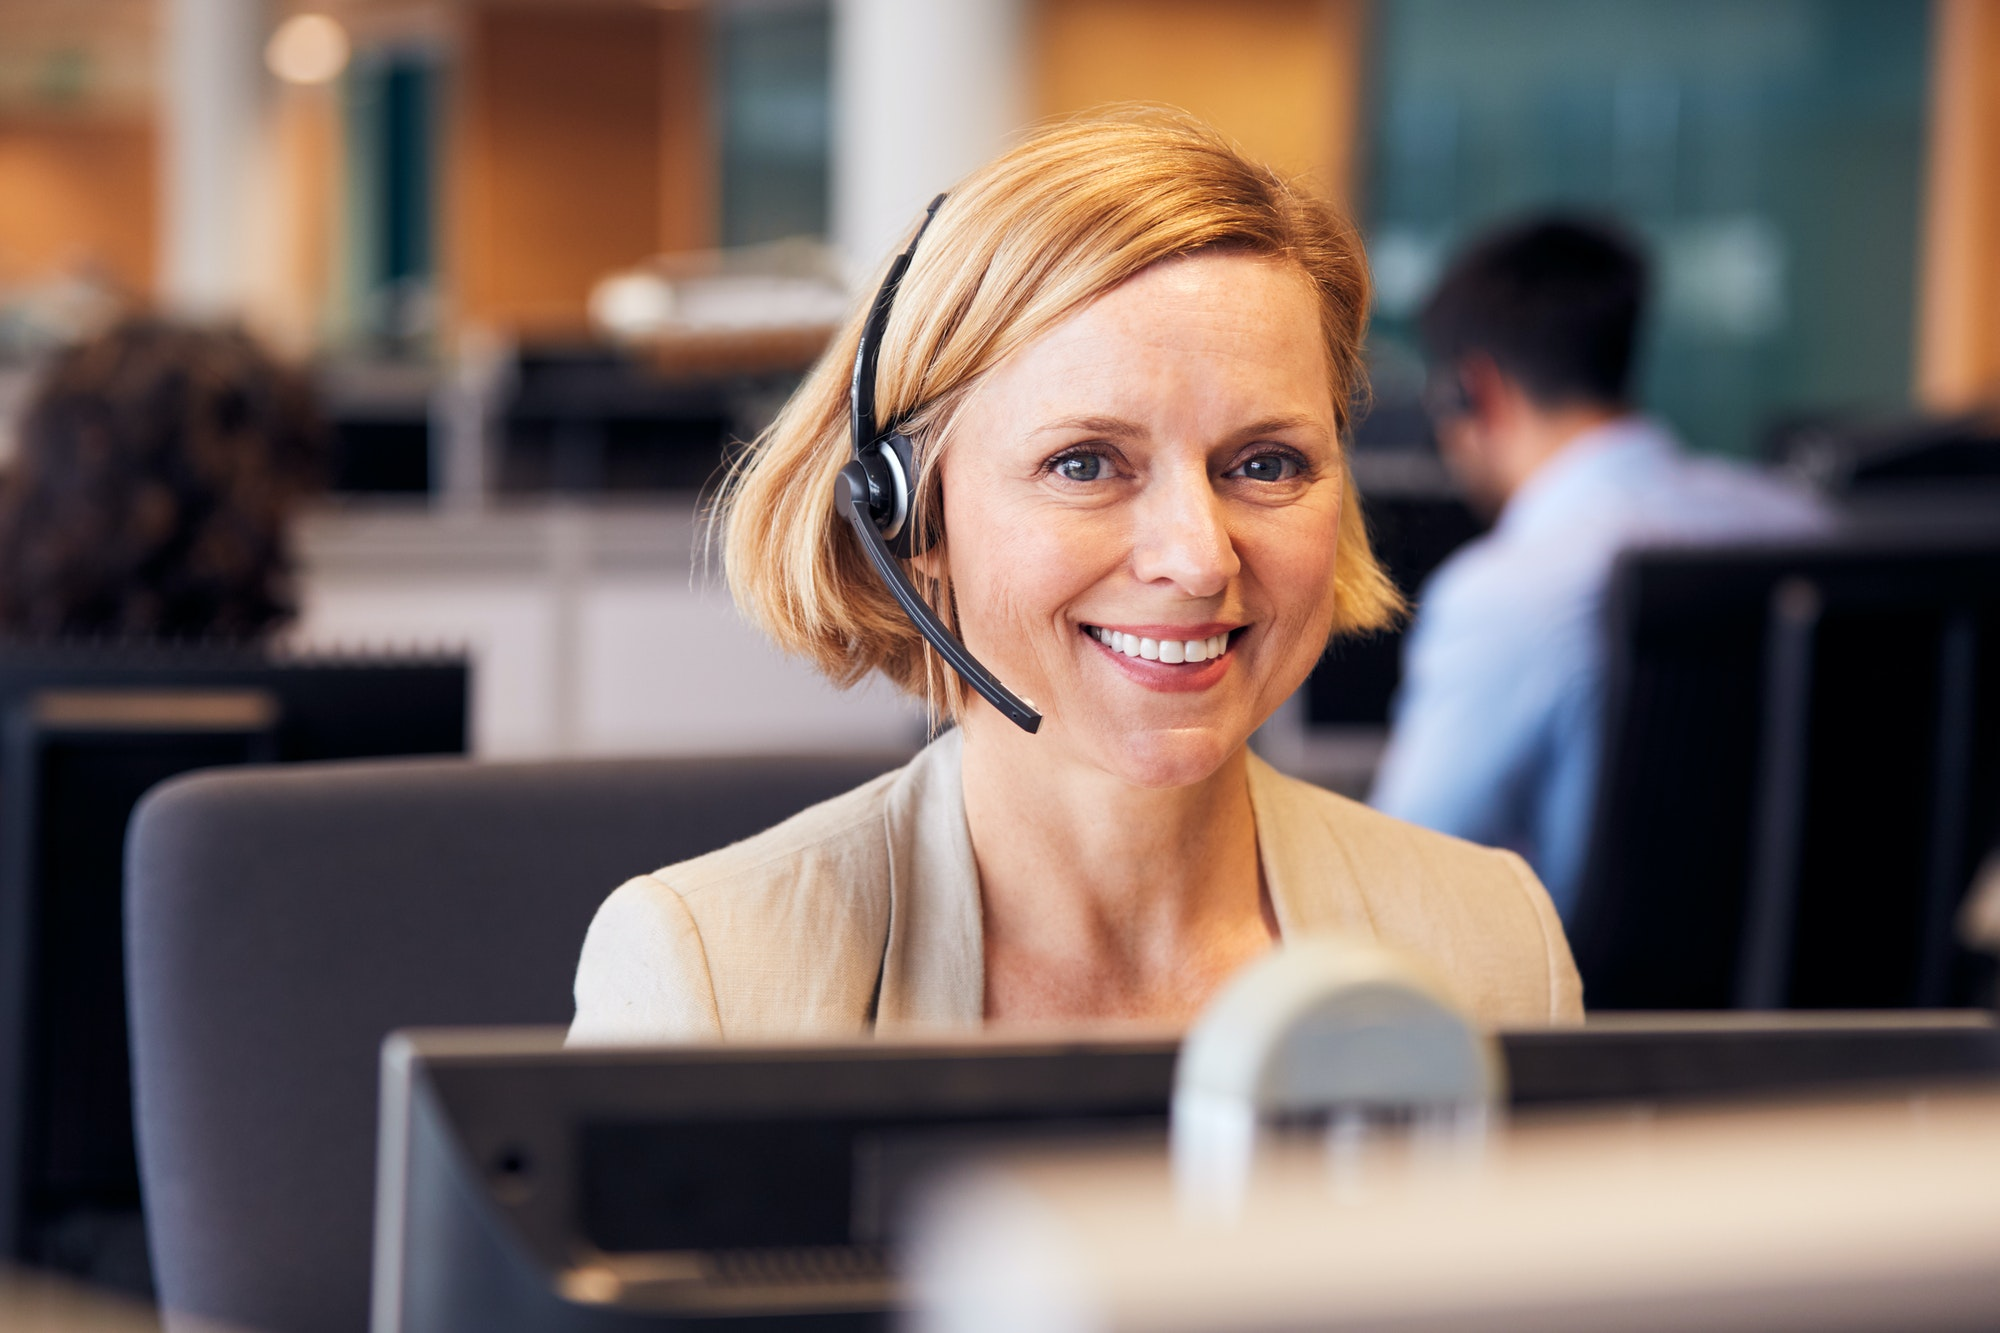 Portrait Of Mature Businesswoman Wearing Telephone Headset Working In Customer Services Department